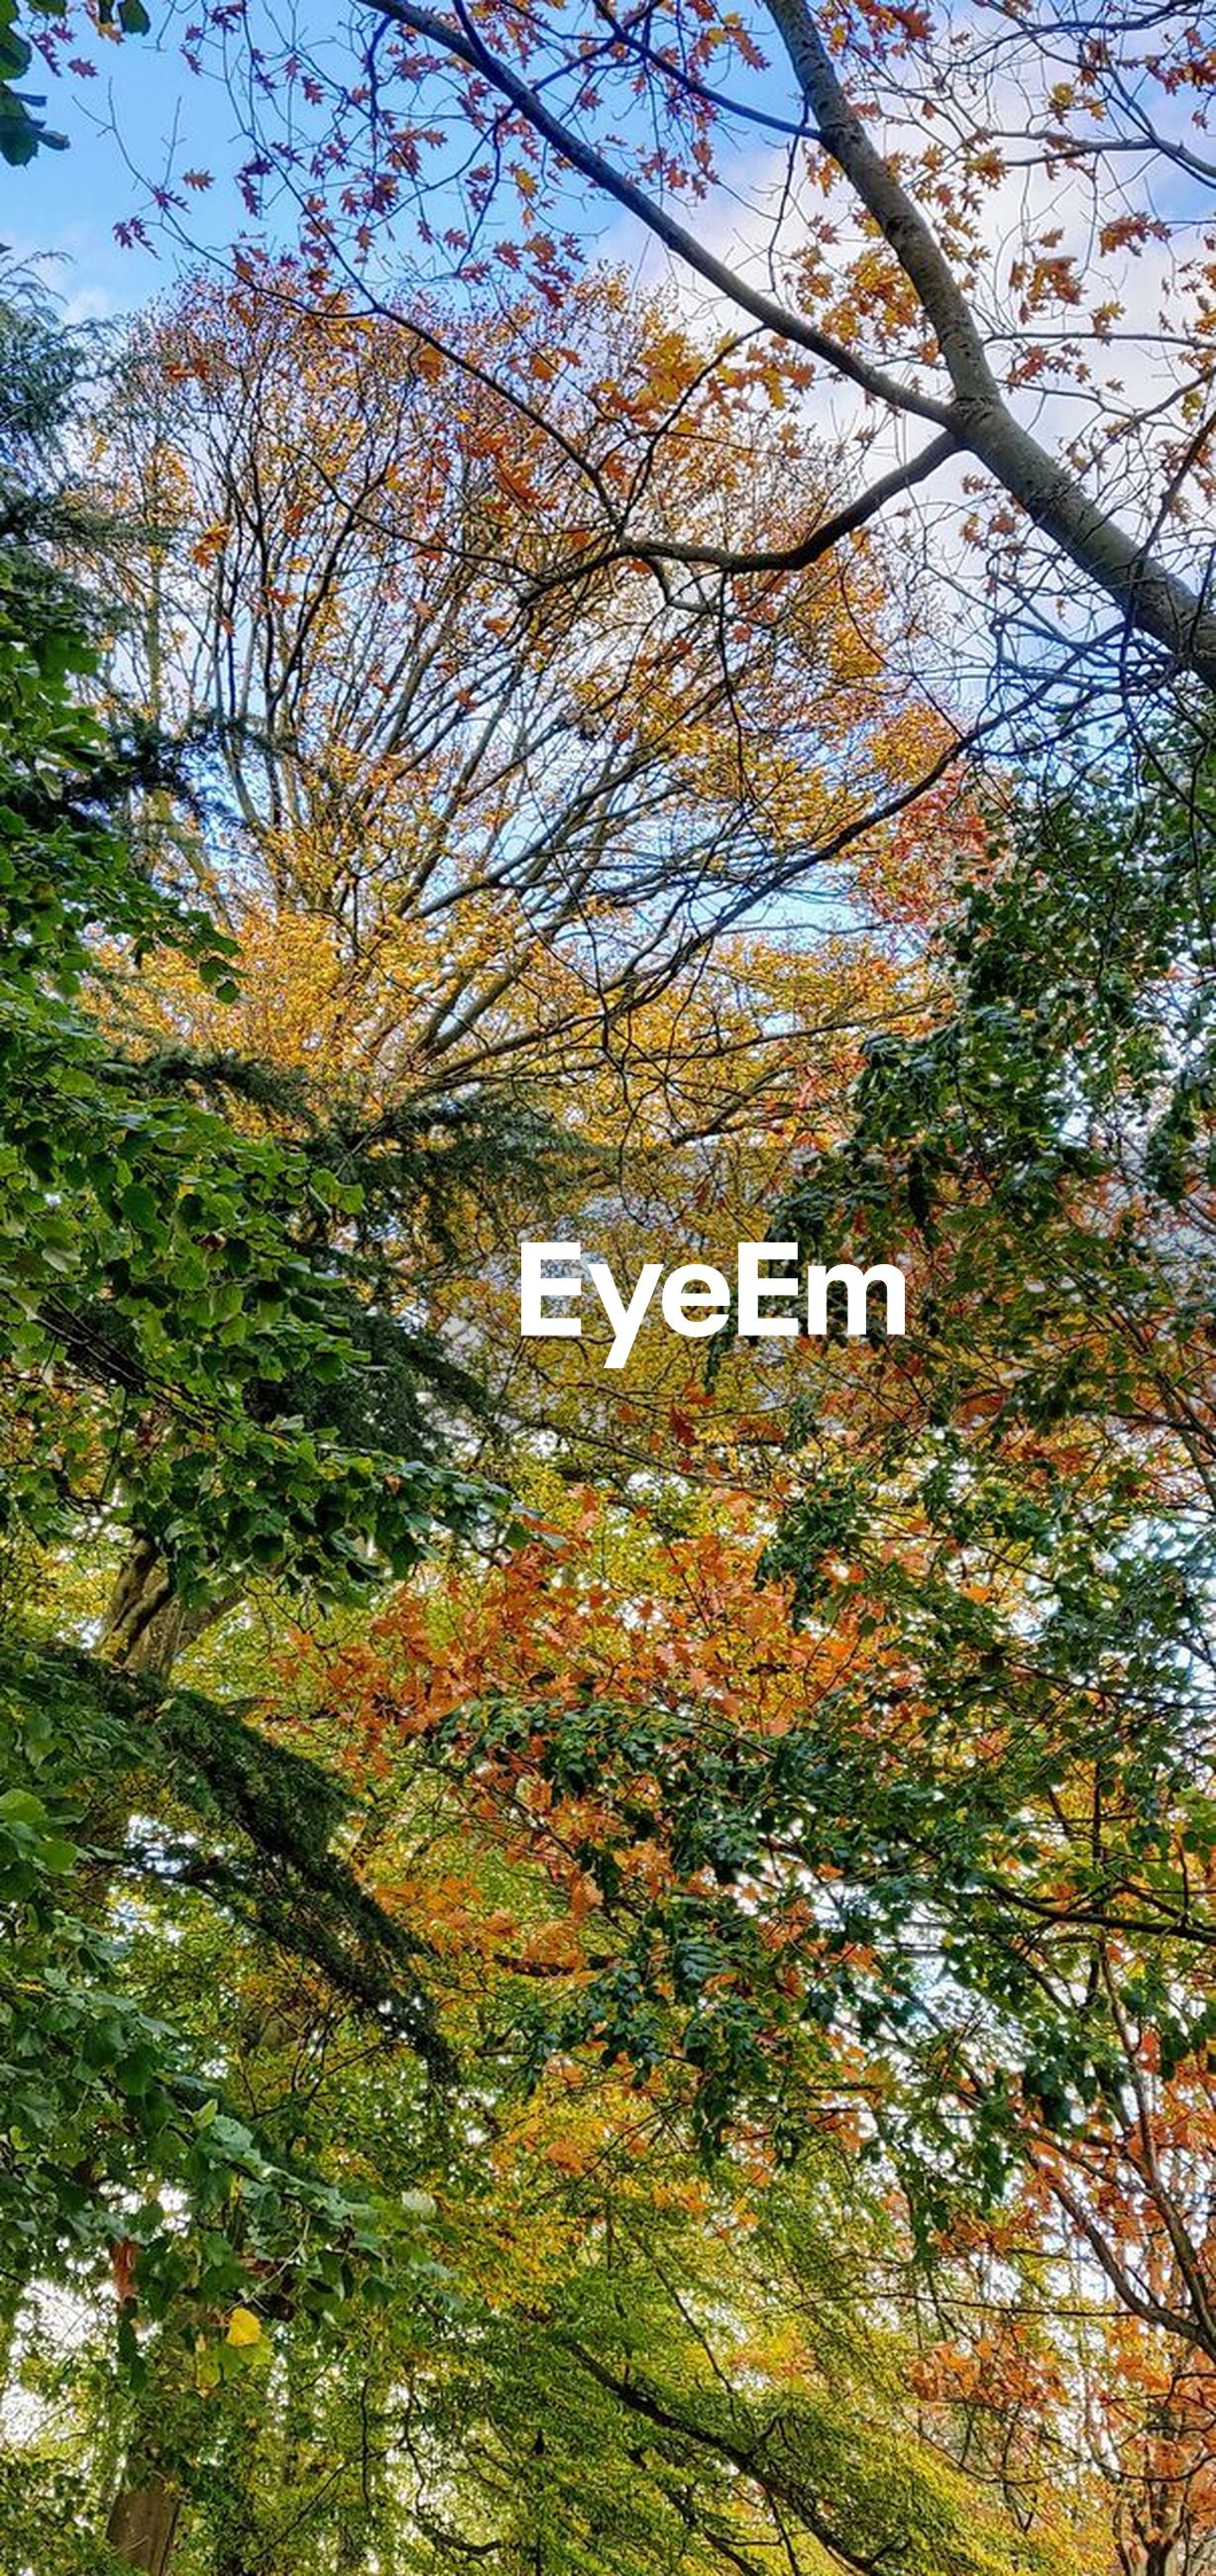 tree, plant, growth, autumn, beauty in nature, branch, no people, change, nature, tranquility, low angle view, day, outdoors, tranquil scene, scenics - nature, sky, land, forest, leaf, plant part, tree canopy